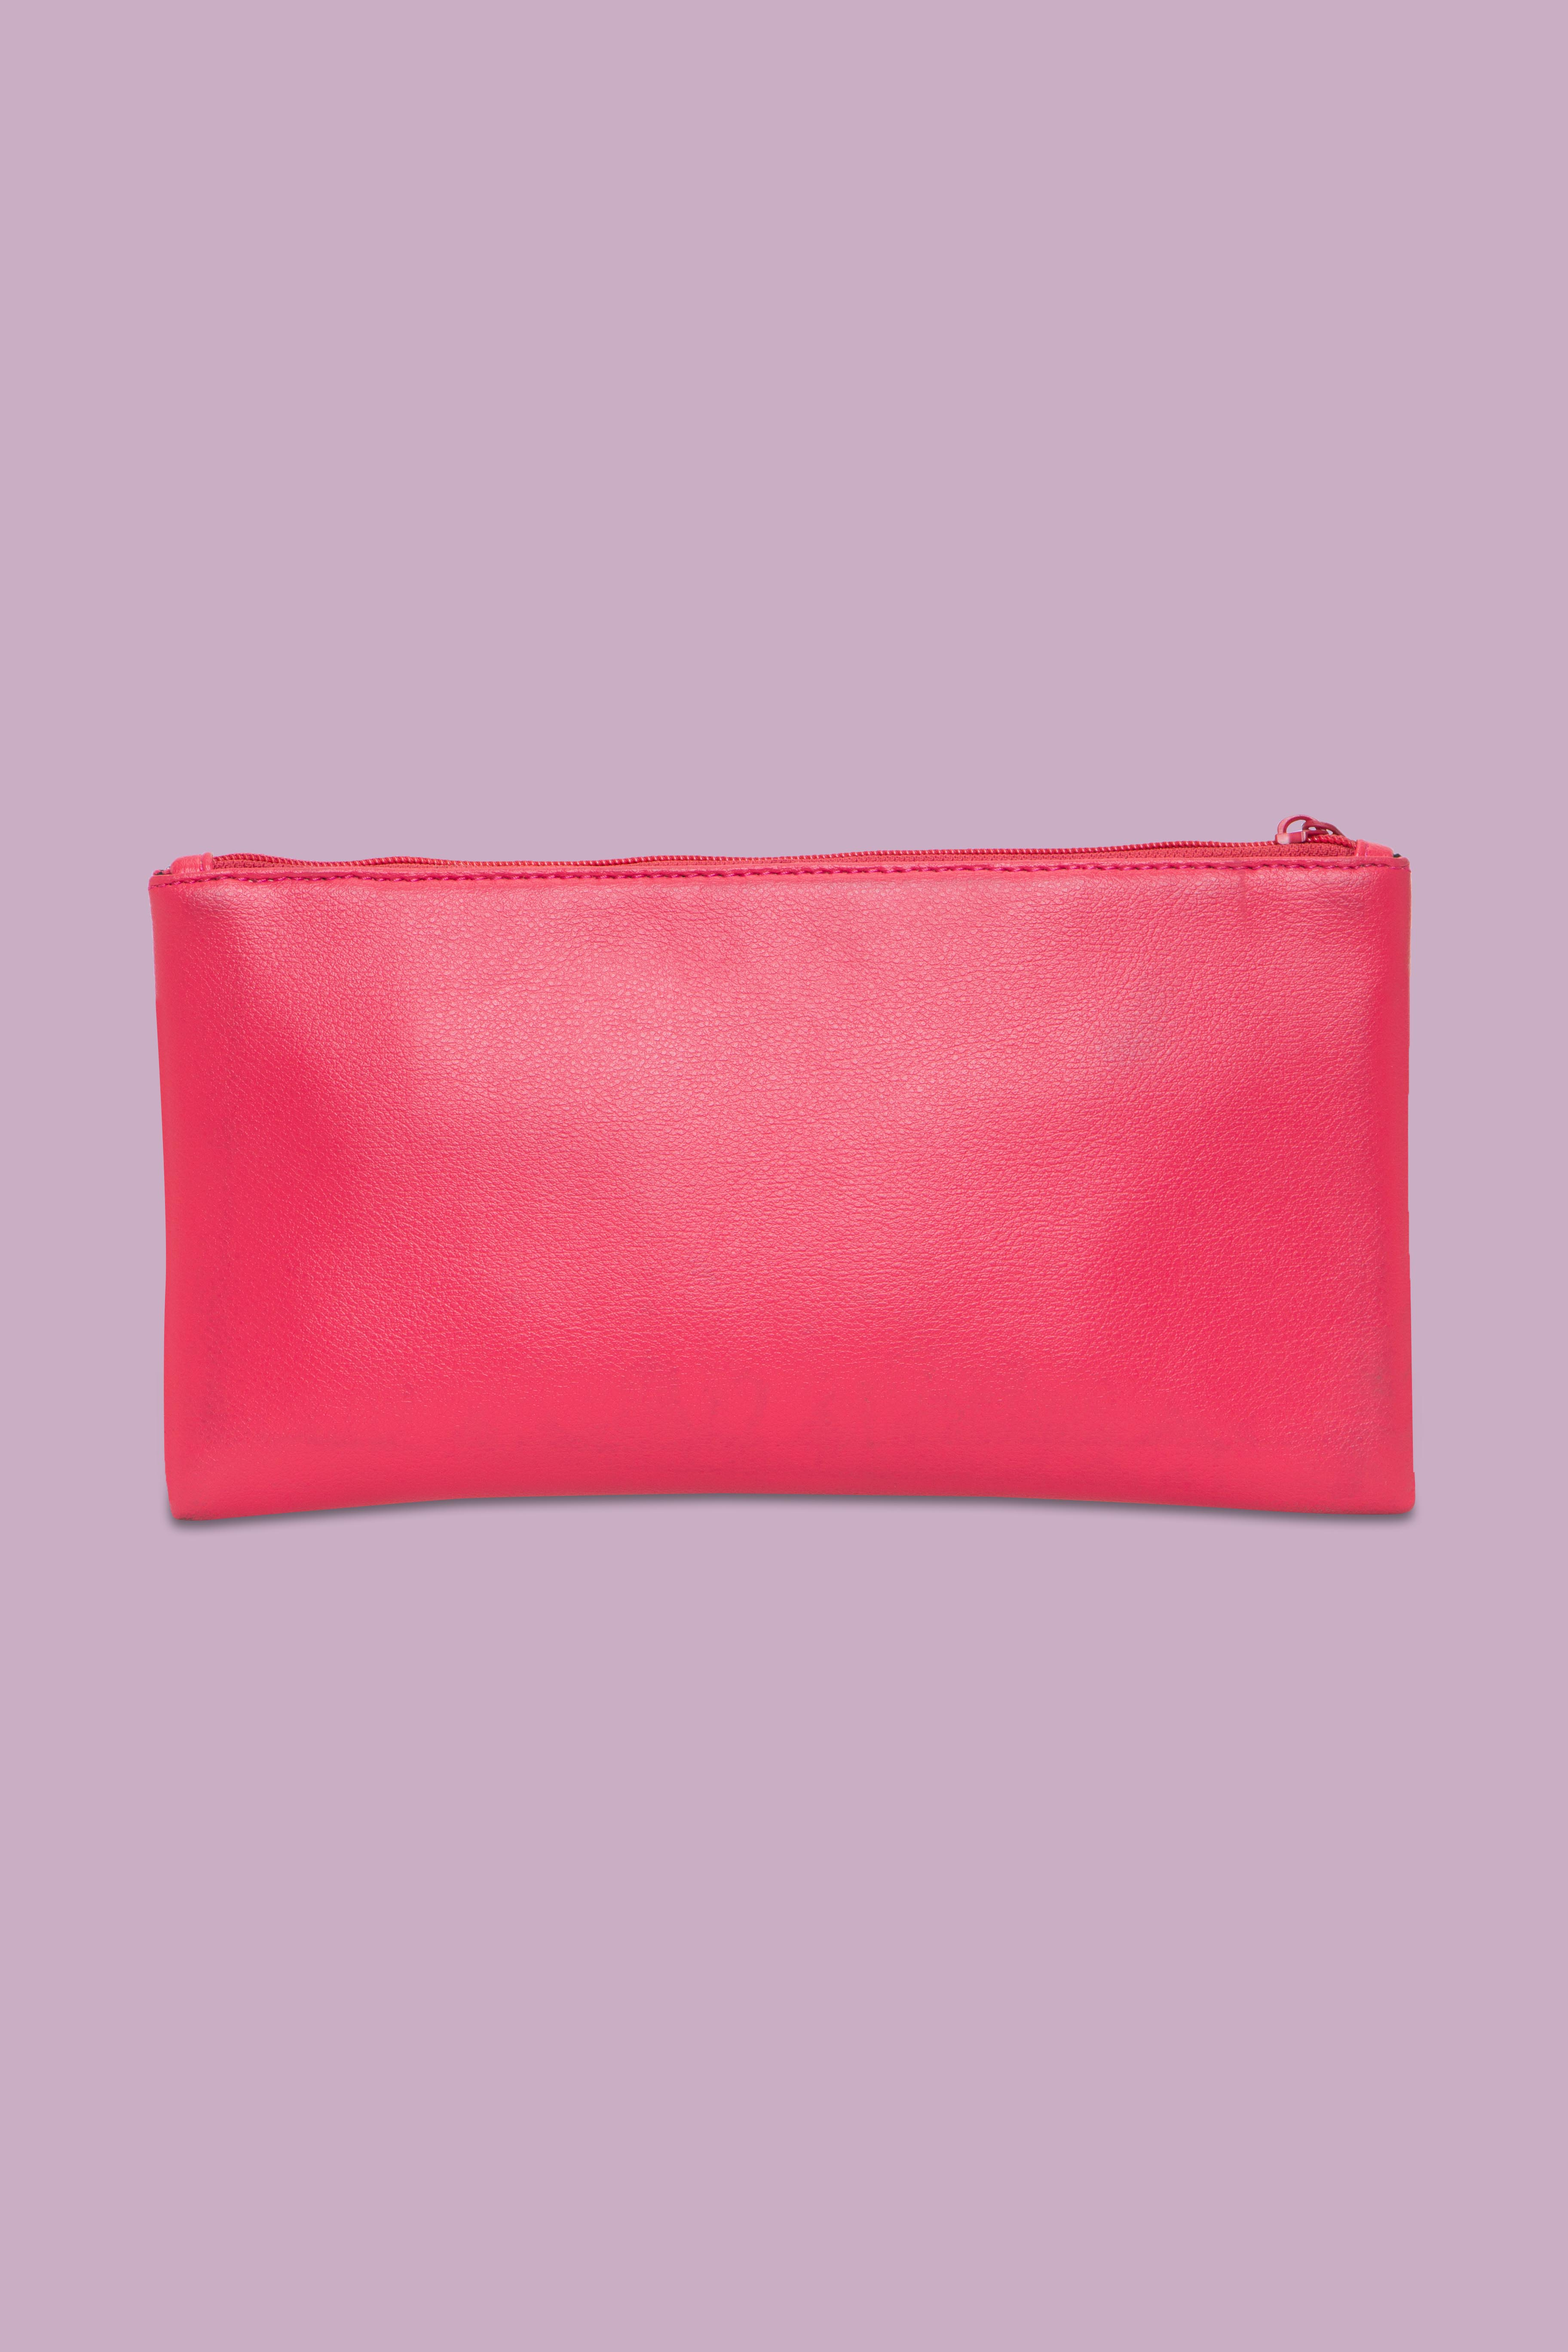 Folle Embroidery Pink Clutch